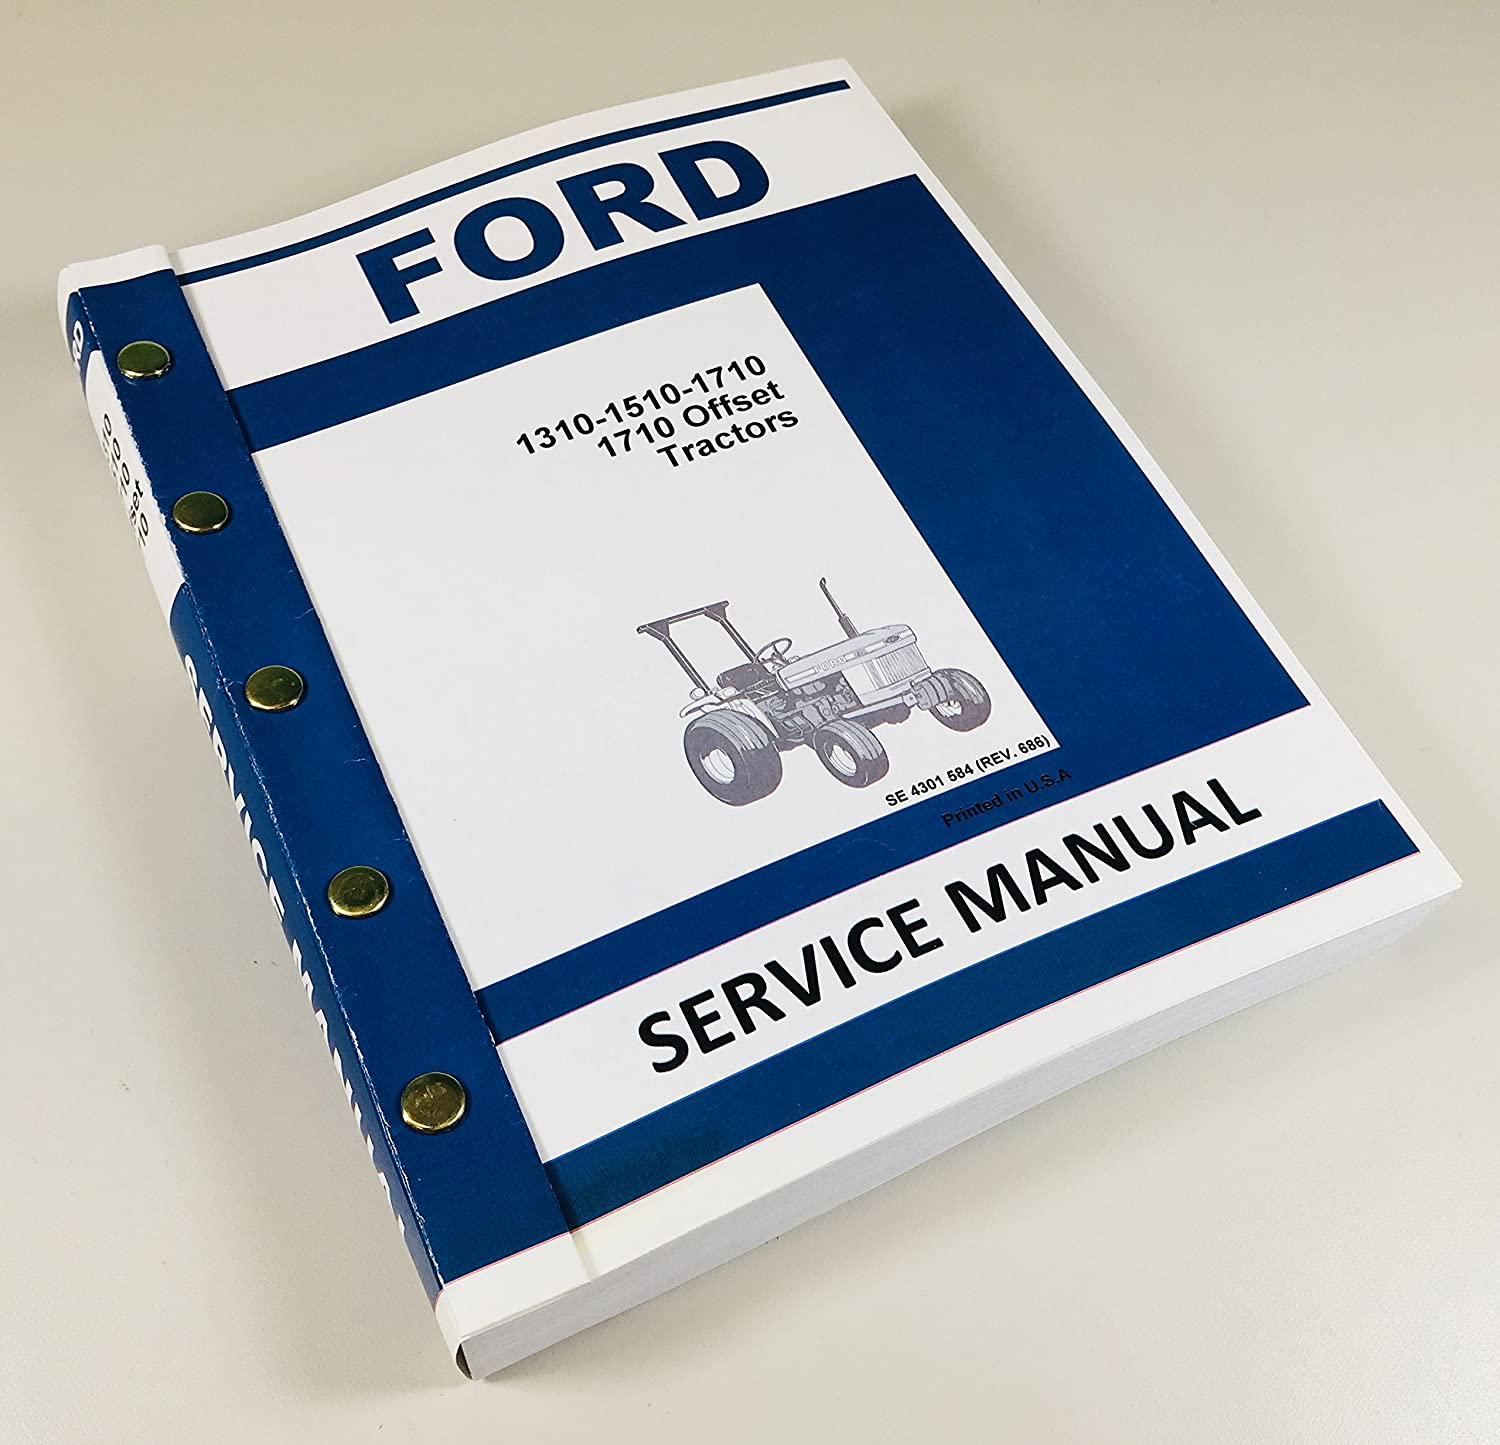 Amazon.com: Ford 1310 1510 1710 Tractor Service Repair Shop Manual  Technical Overhaul Book: Industrial & Scientific